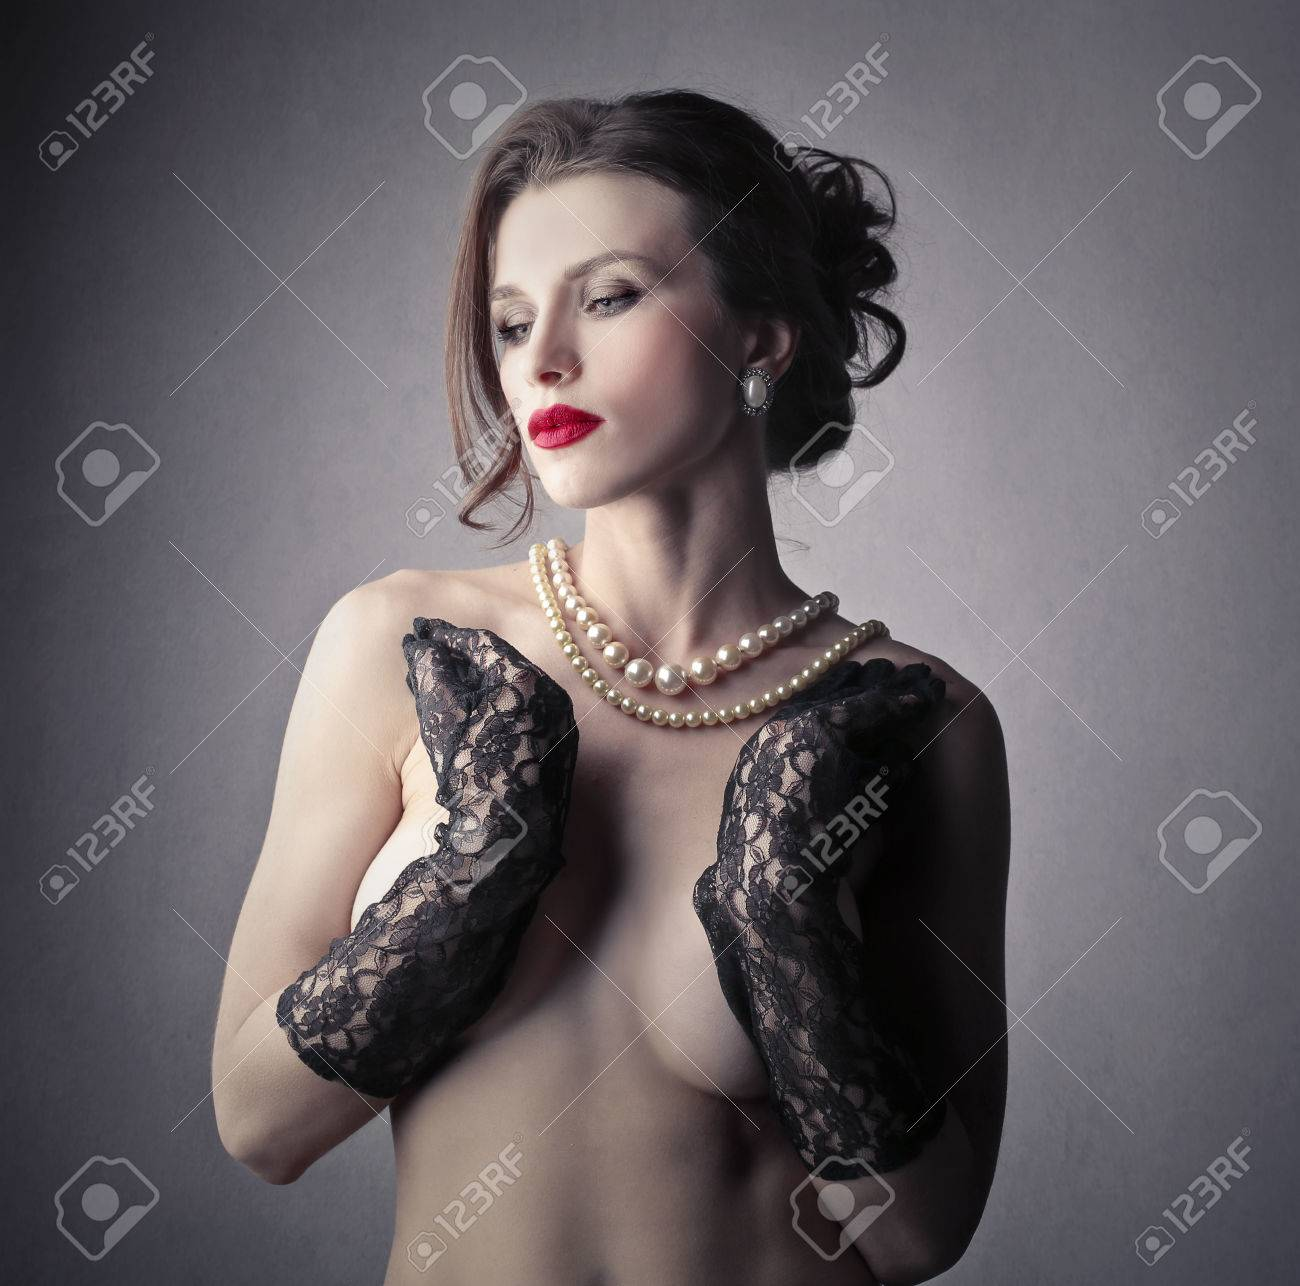 Sensual Woman With Black Gloves And Red Lipstick Stock Photo 50739622